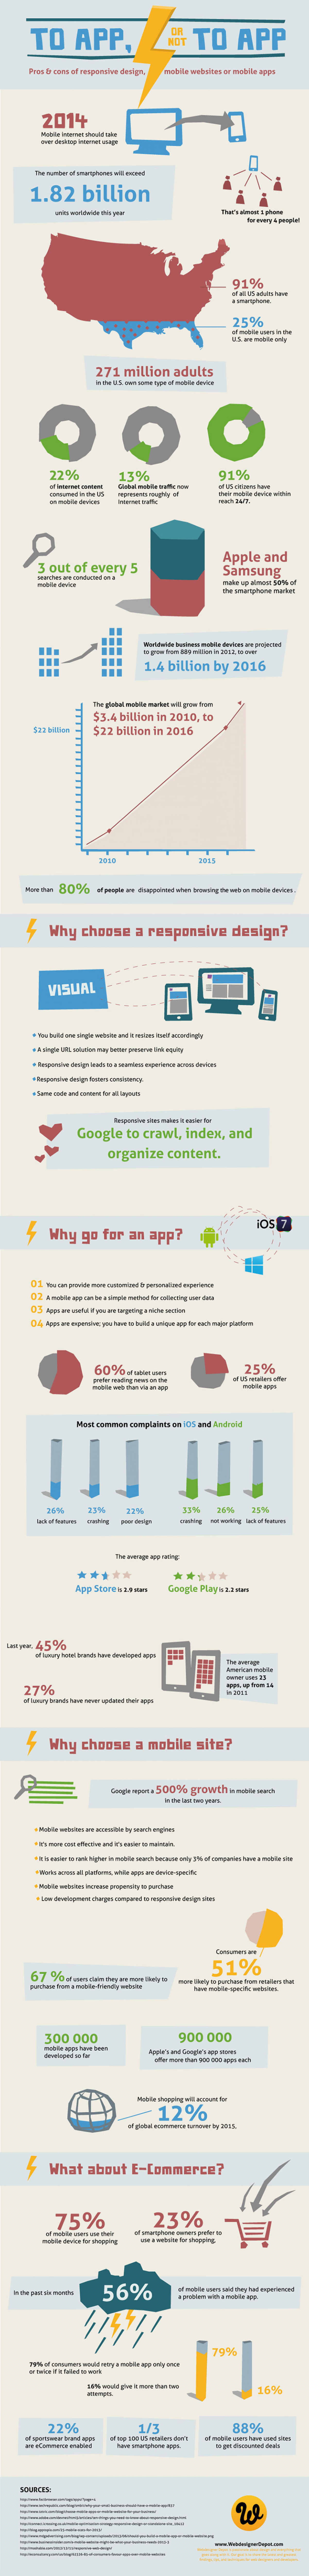 To app, or not to app Infographic